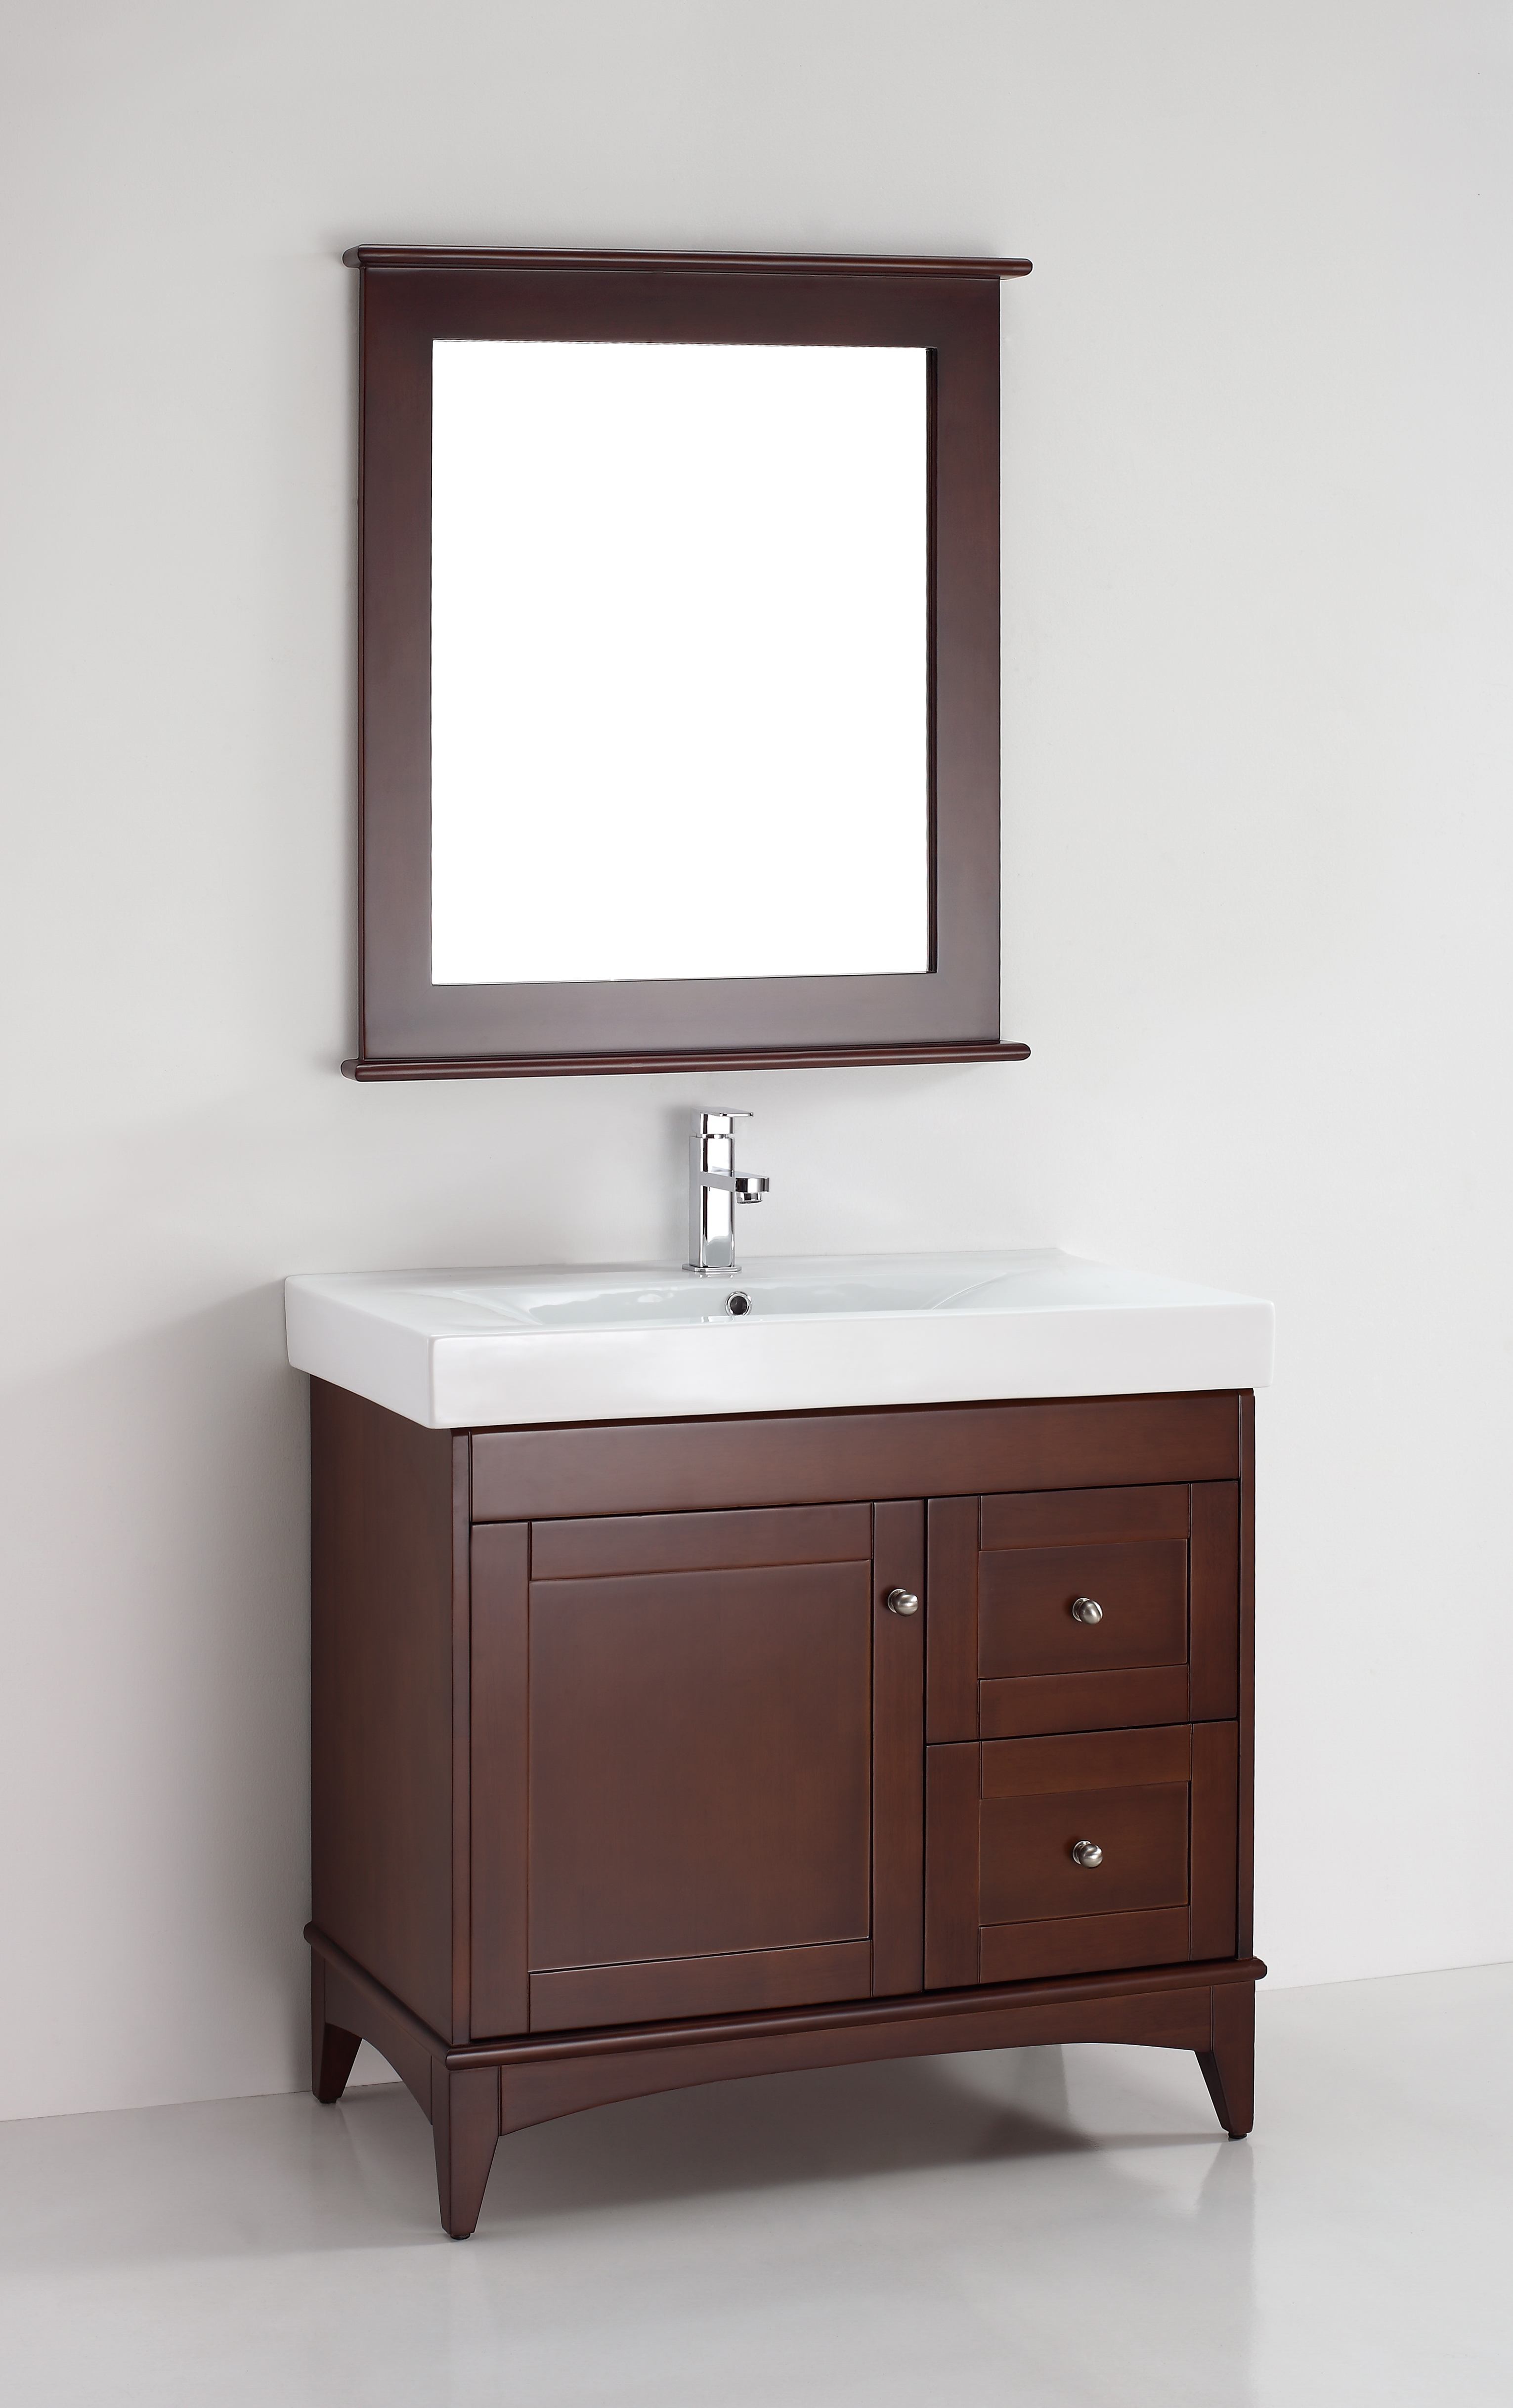 30 Inch Brown Bathroom Vanity Set With White Carrera: Magnolia 36 Inch Warm Brown Vanity